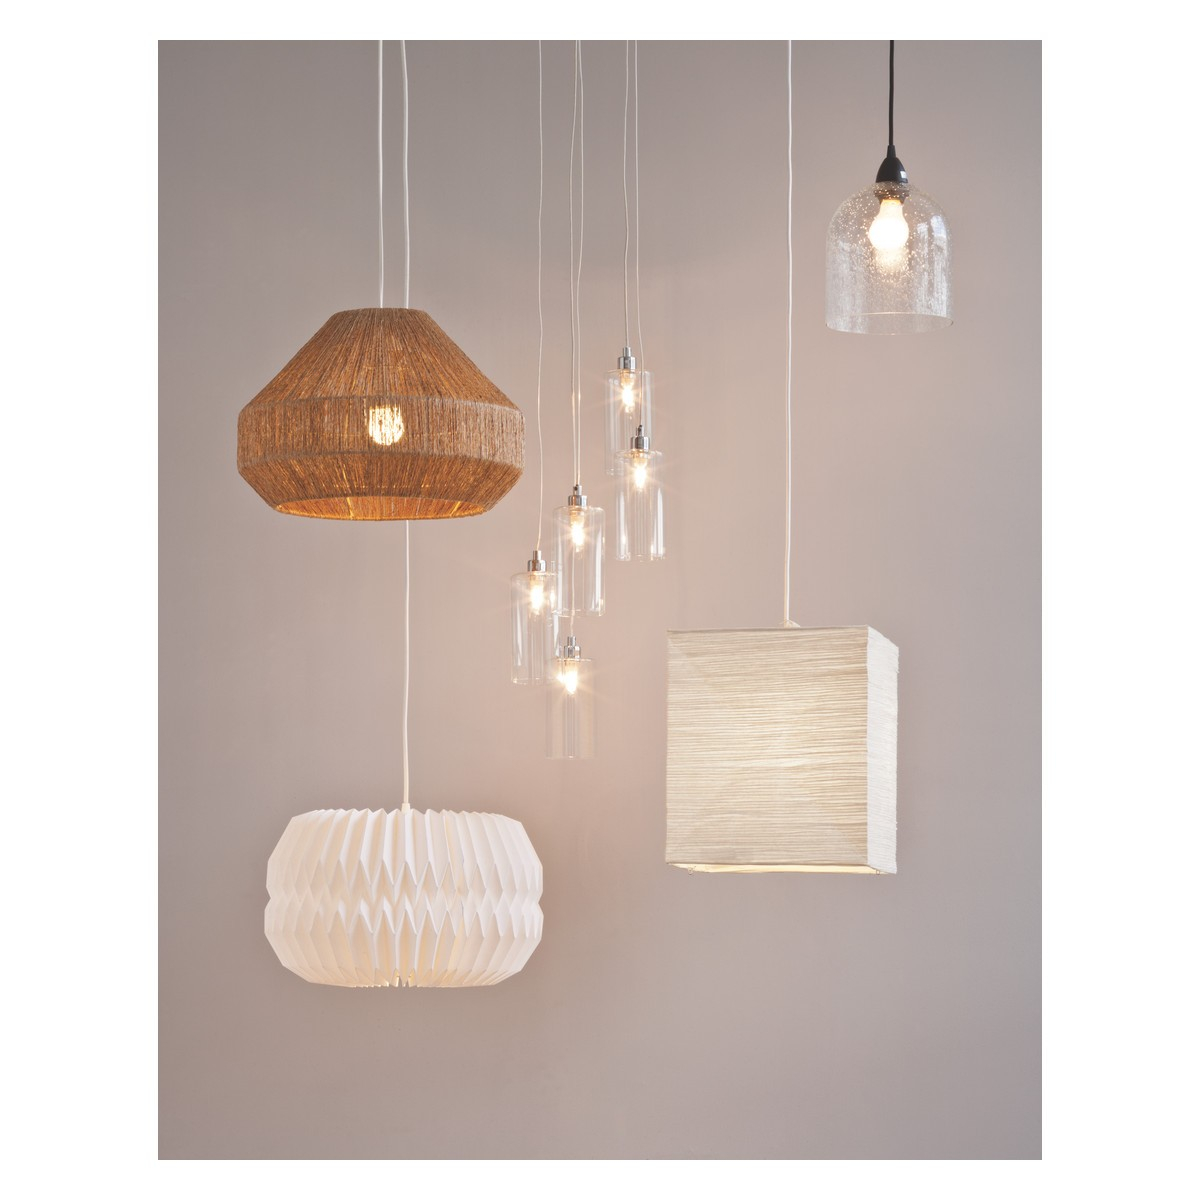 Ceiling Sconce An Effective And Reliable Sconce Lighting And intended for sizing 1200 X 1200